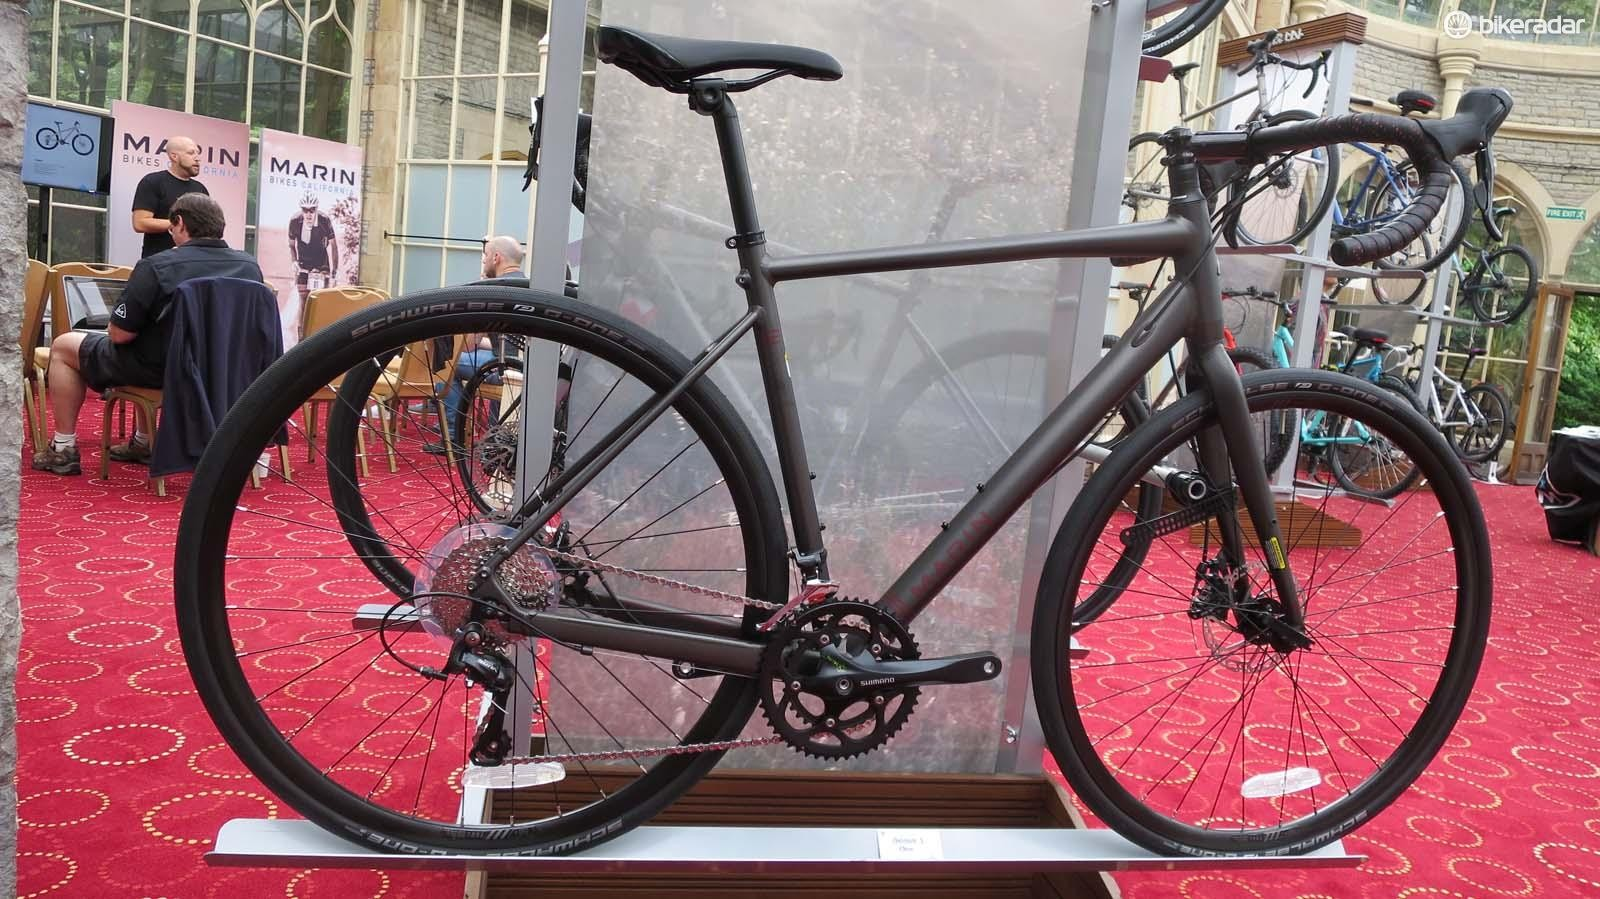 The base model Gestalt 1 gravel machine comes with a Shimano Sora drivetrain and cable disc brakes for £800